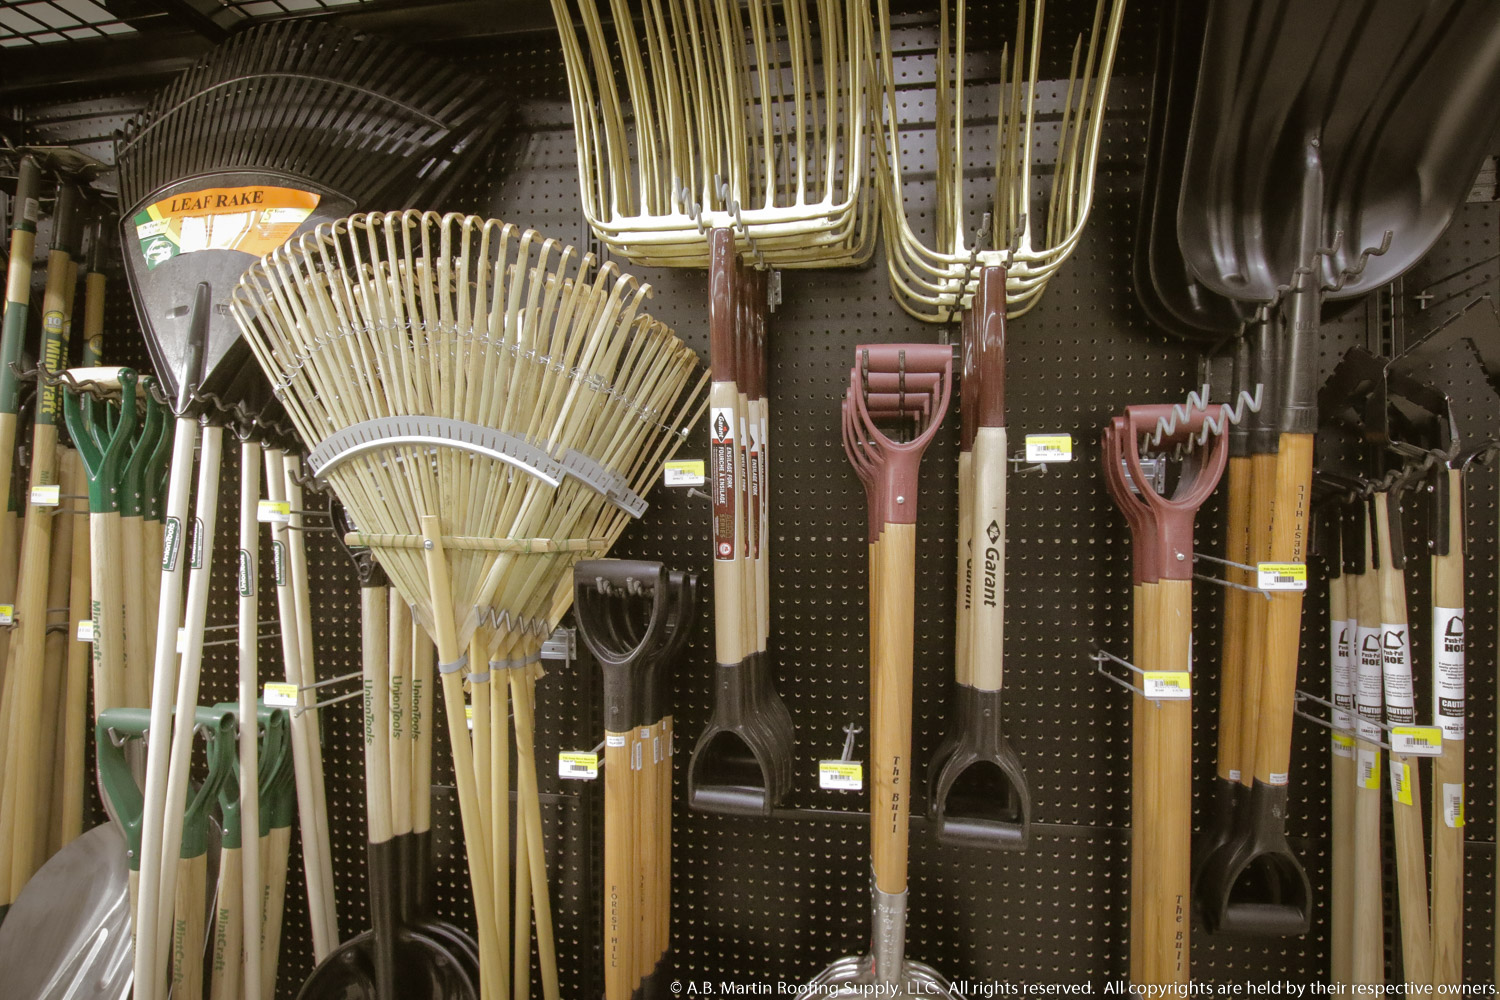 Lawn And Garden Hardware Supplies At A B Martin